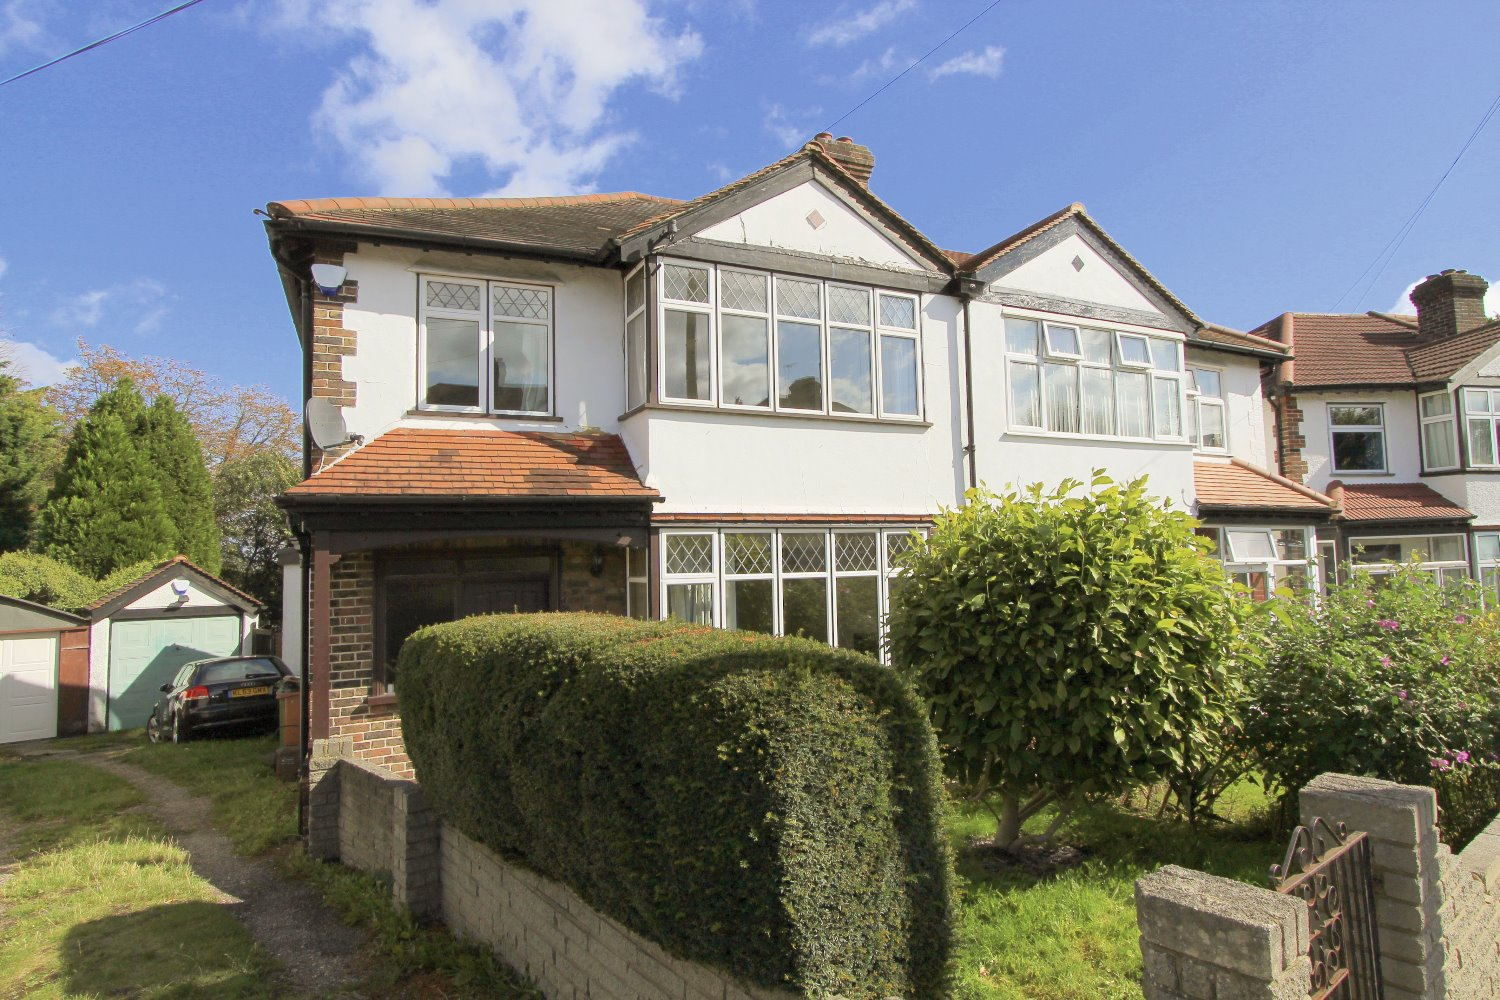 3-Bed-Semi-Detached-House-For-Sale-in-Iberian-Avenue-Wallington-SM6-Nearby-Wallington_edited